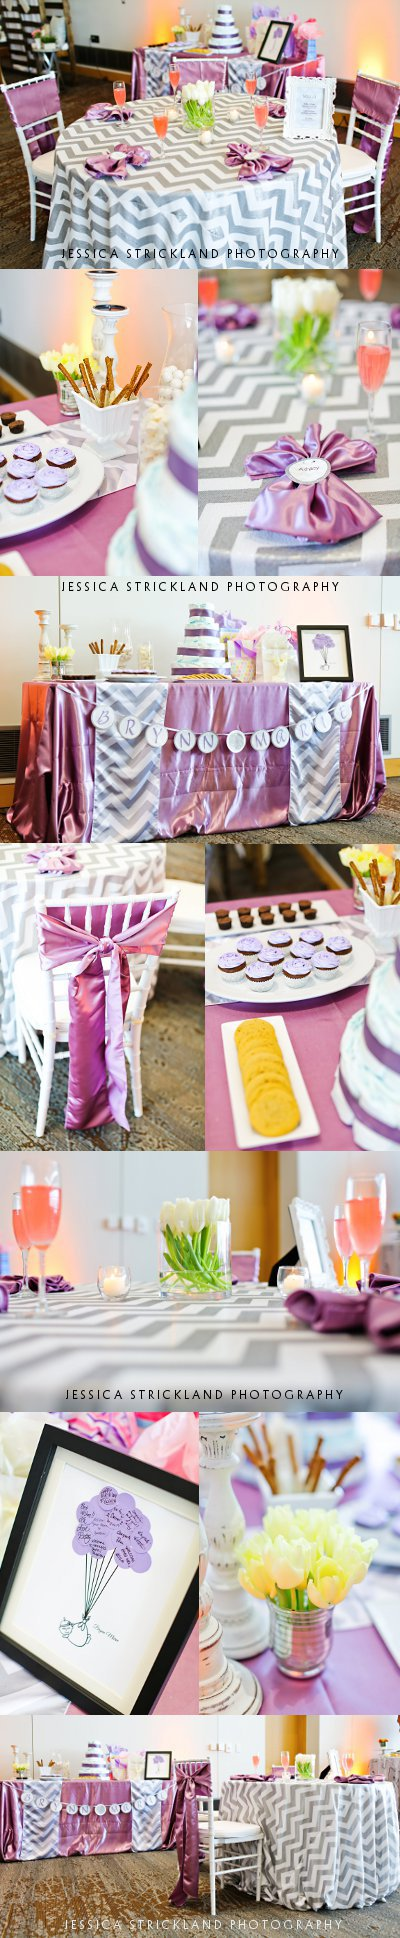 Art of the Table 2014 Ruffles and Roses Baby Shower Table Design